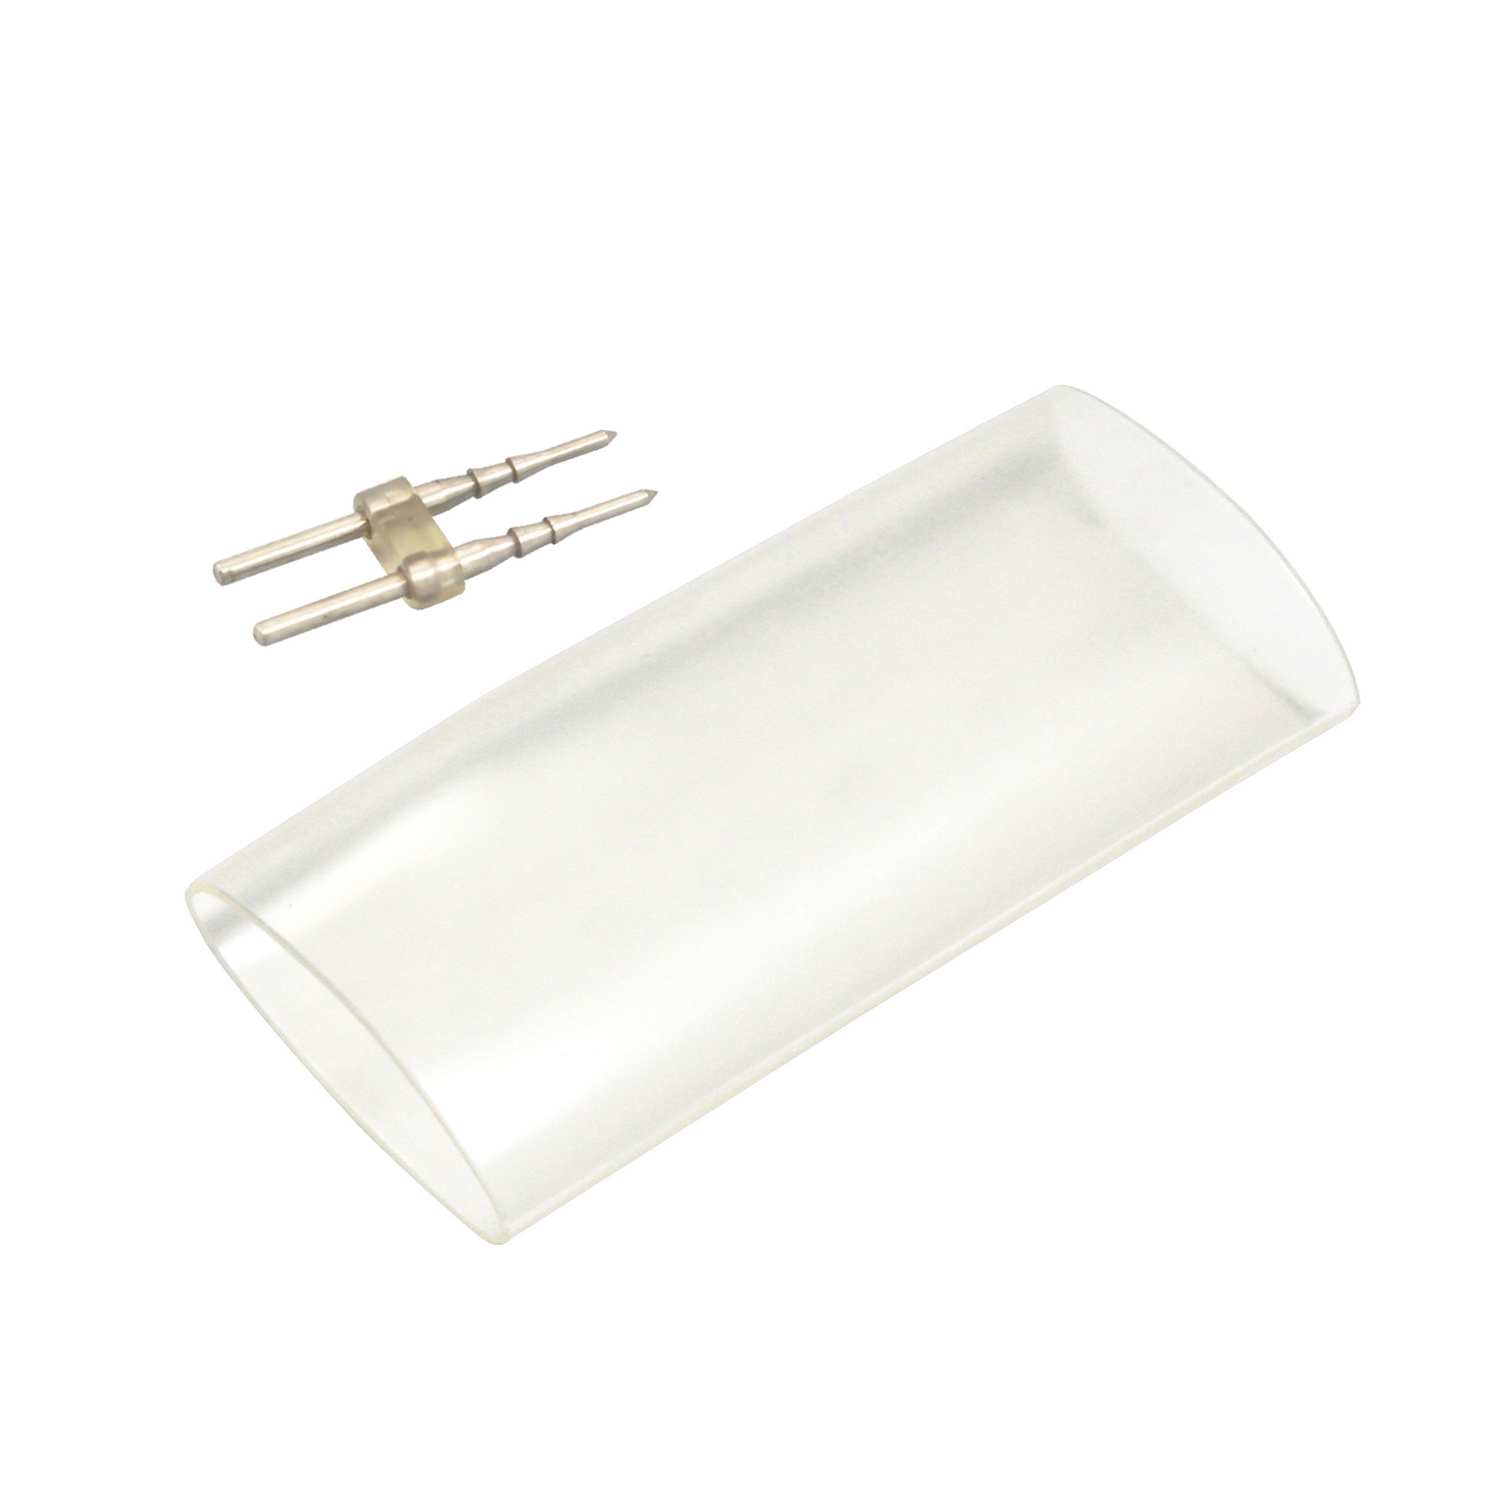 Connectors from the Polar Neon Flex collection by American Lighting MINI P2 NF INVS